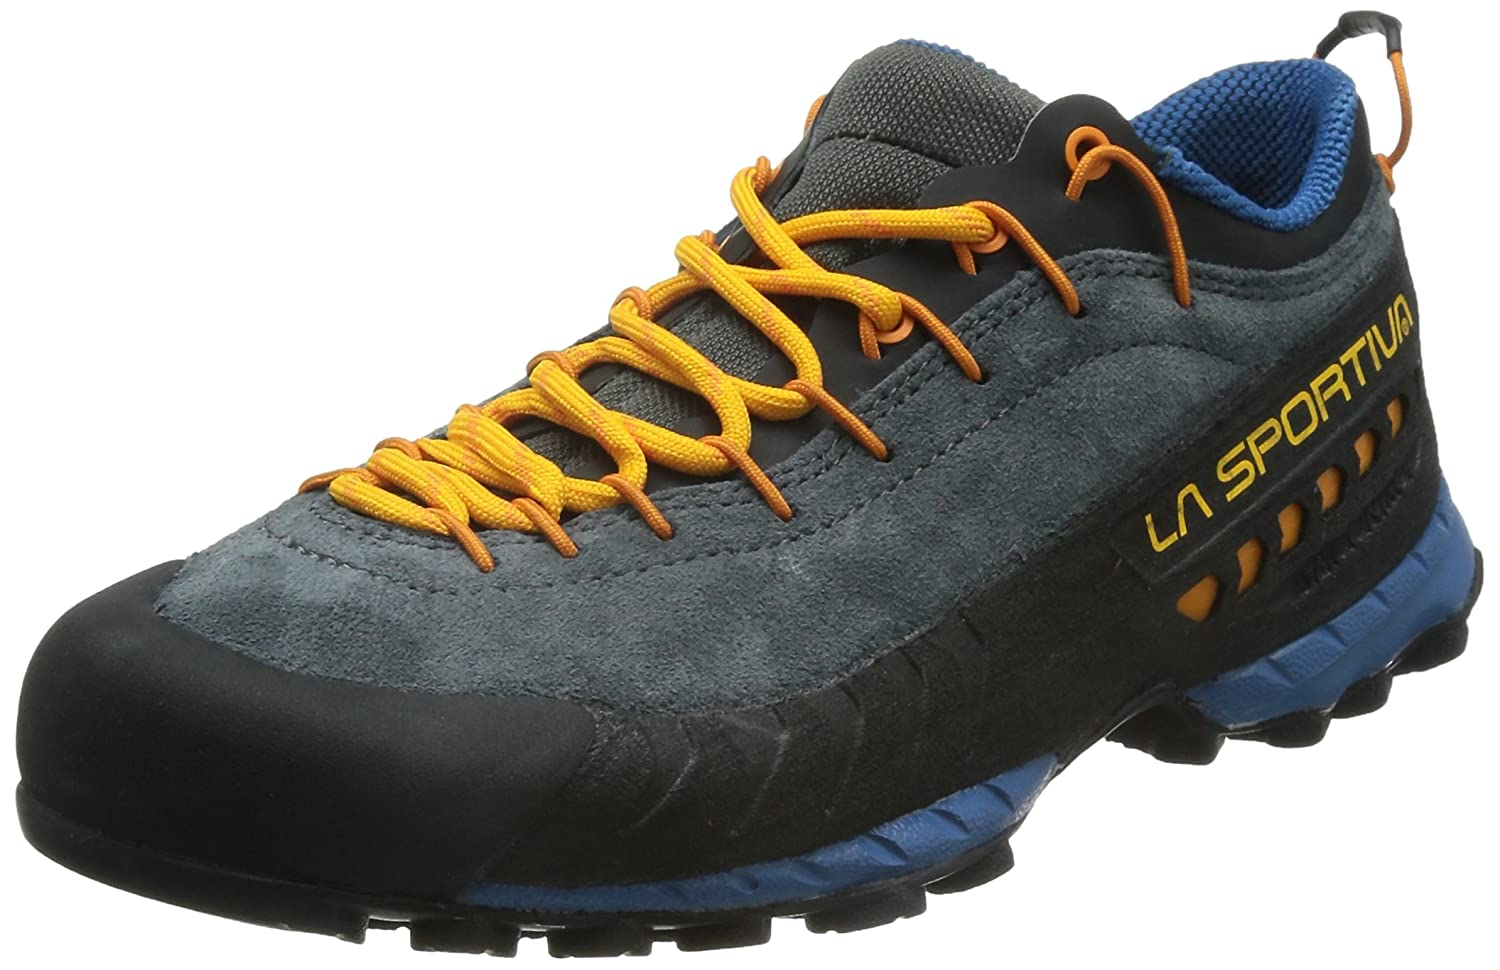 La Sportiva TX3 Approach Shoes Unisex Blue/Papaya Größe 41 2017 Schuhe OYkjNo